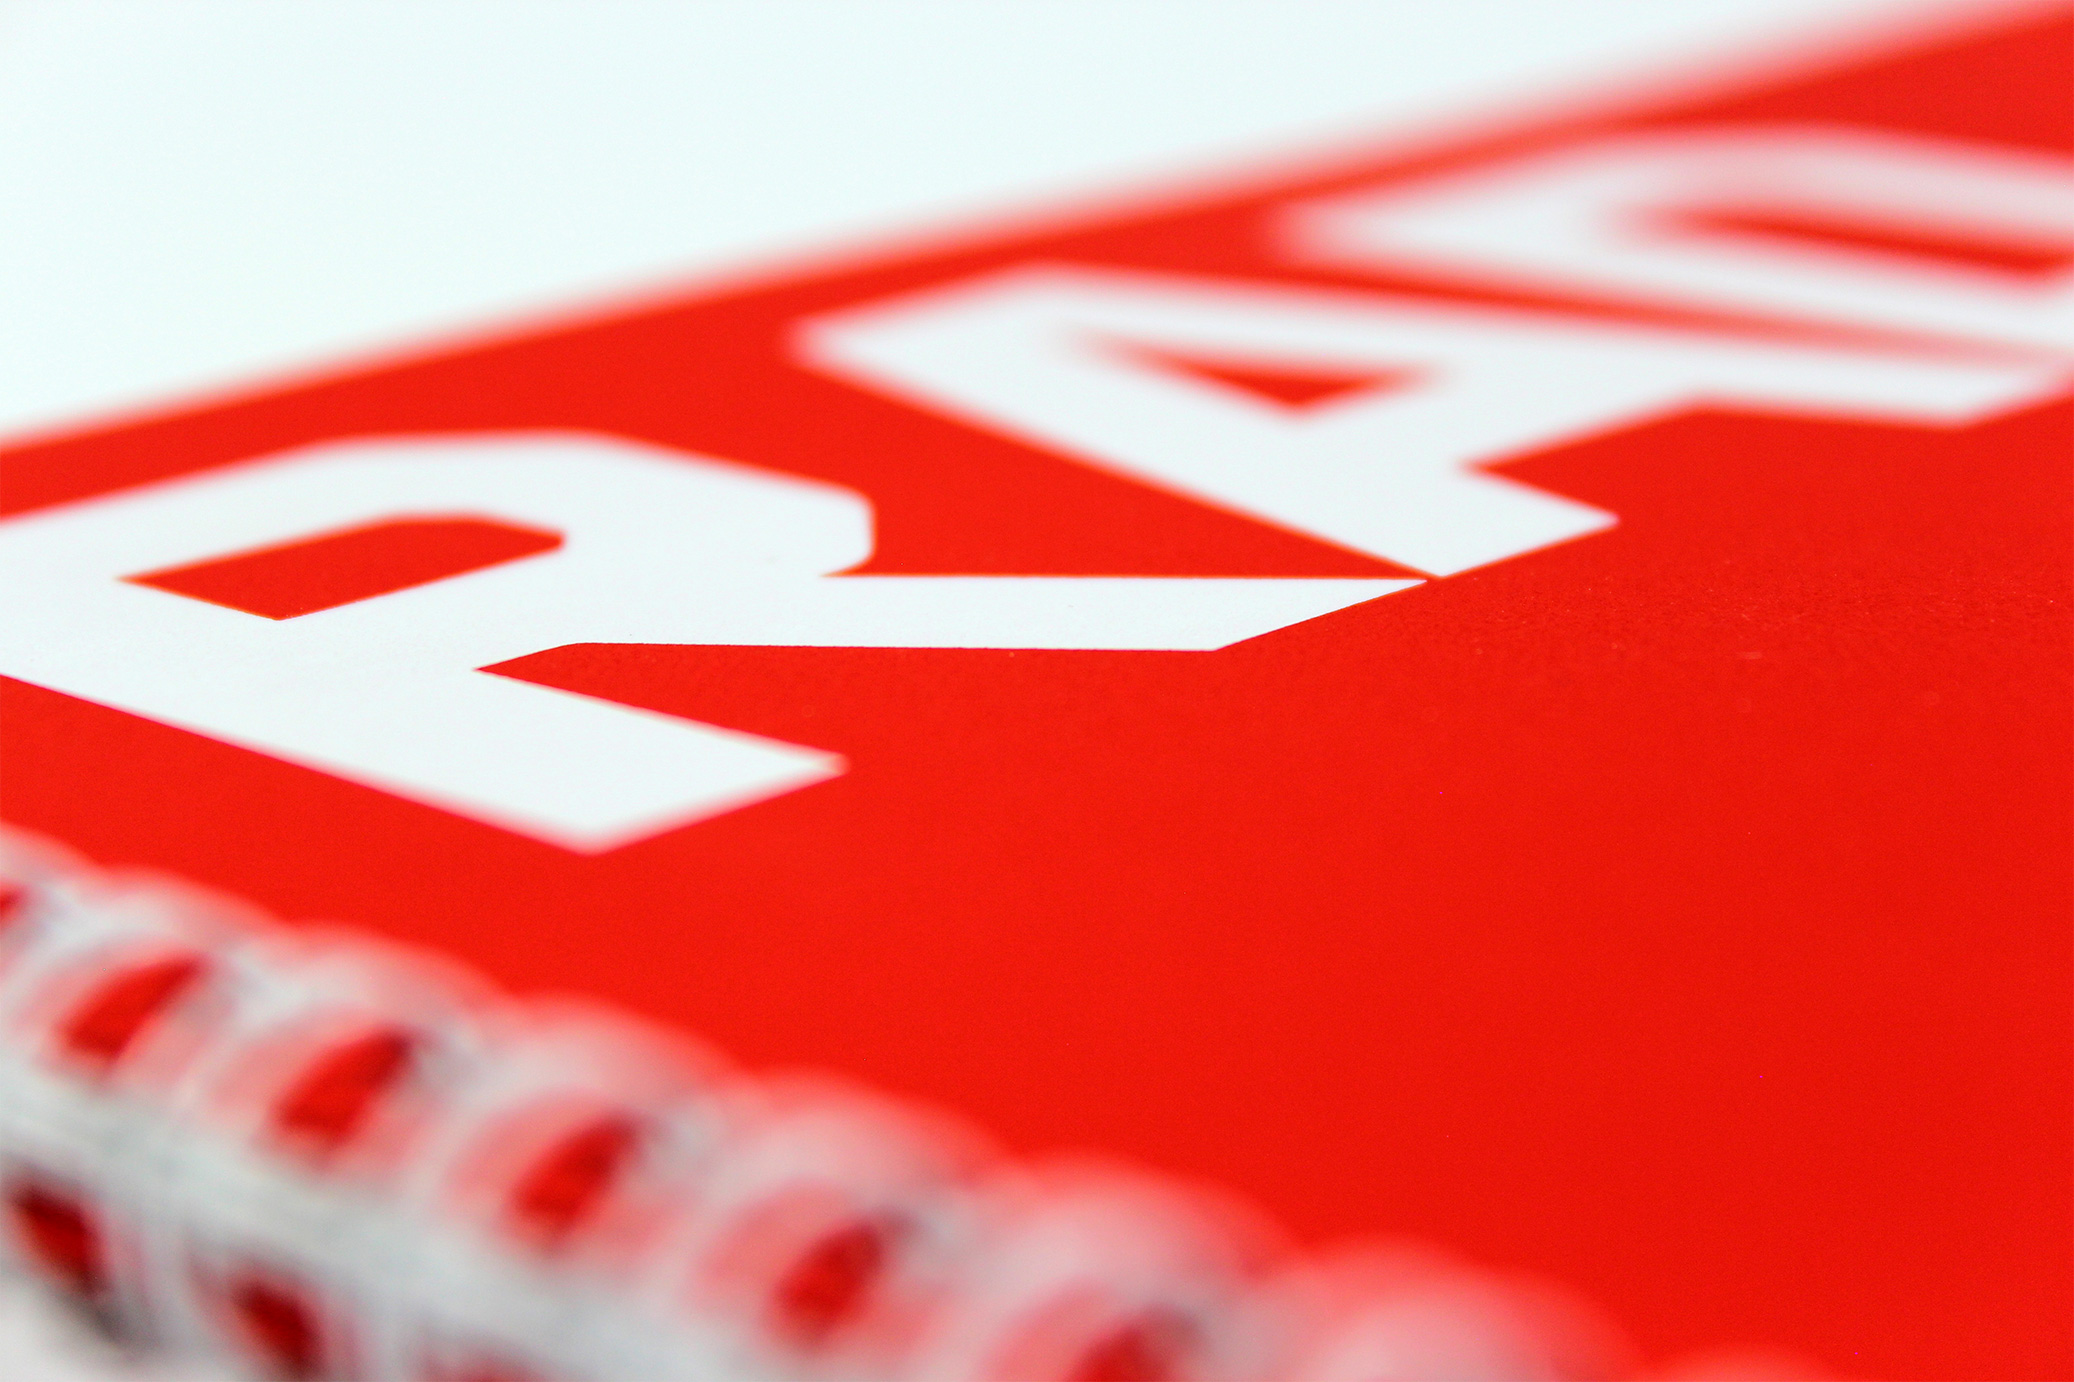 Printed Wiro-bound corporate promotional brochure for RAD - close-up showing the binding and red card front cover with spot white printed text